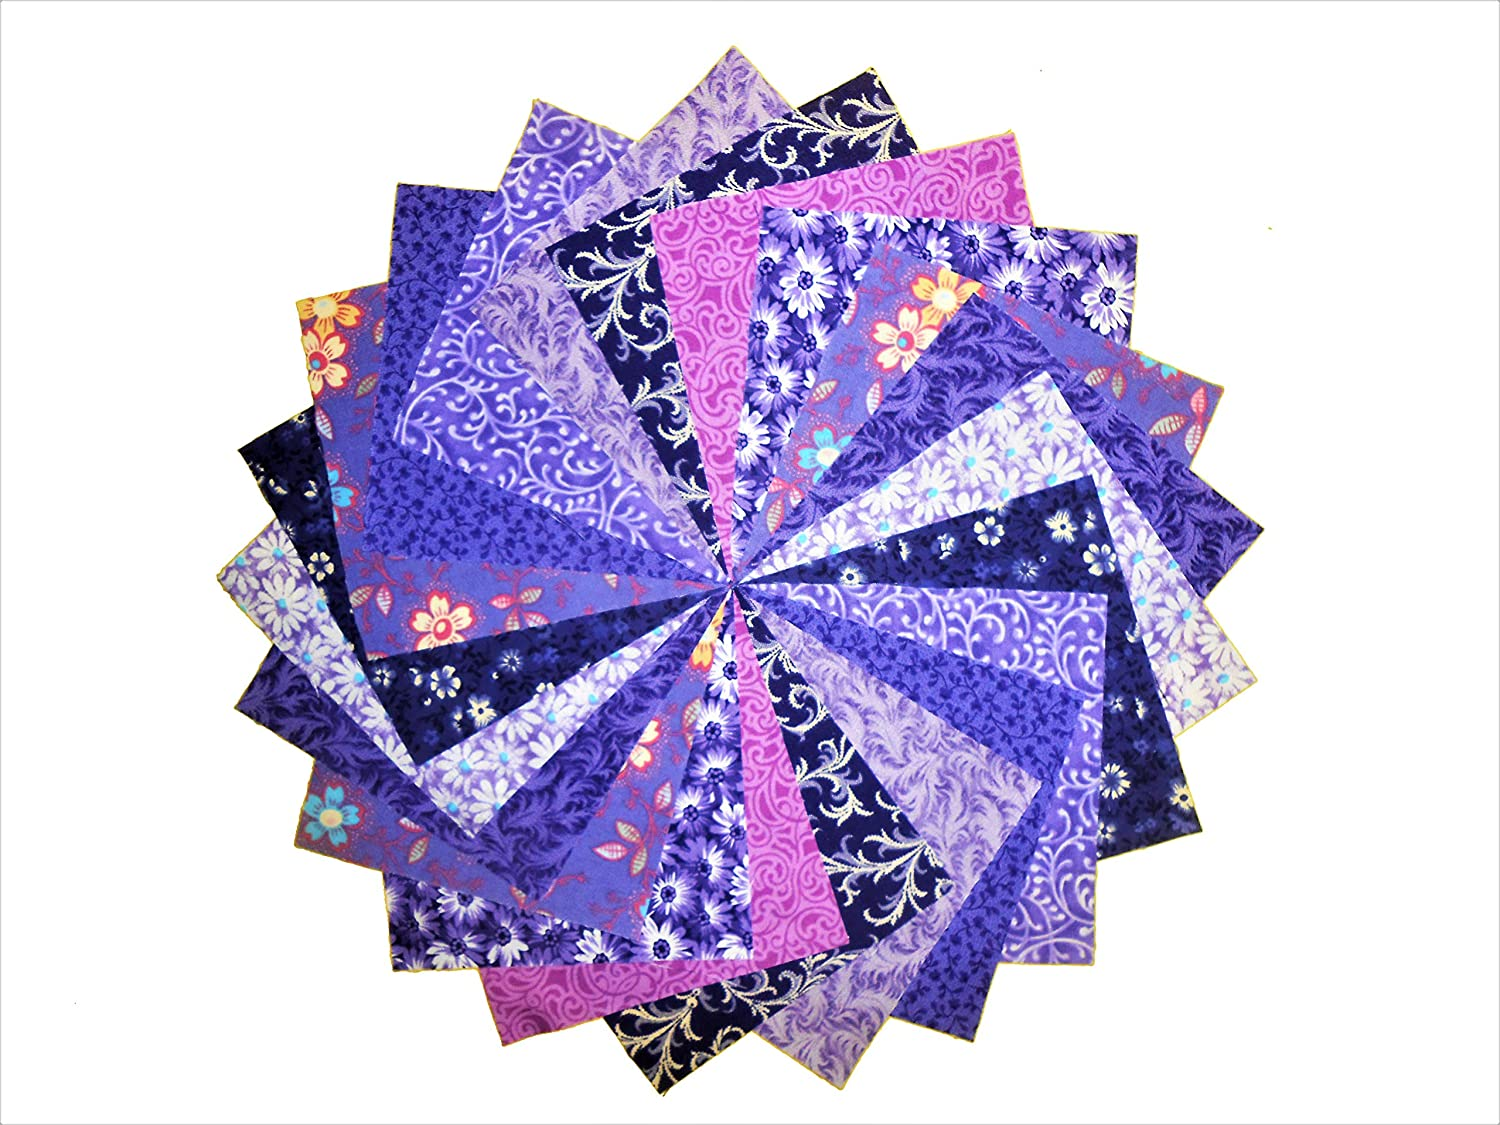 40 5 Twilight//shades of Purple and Blue Charm Pack-10 different patterns//colors-4 of each